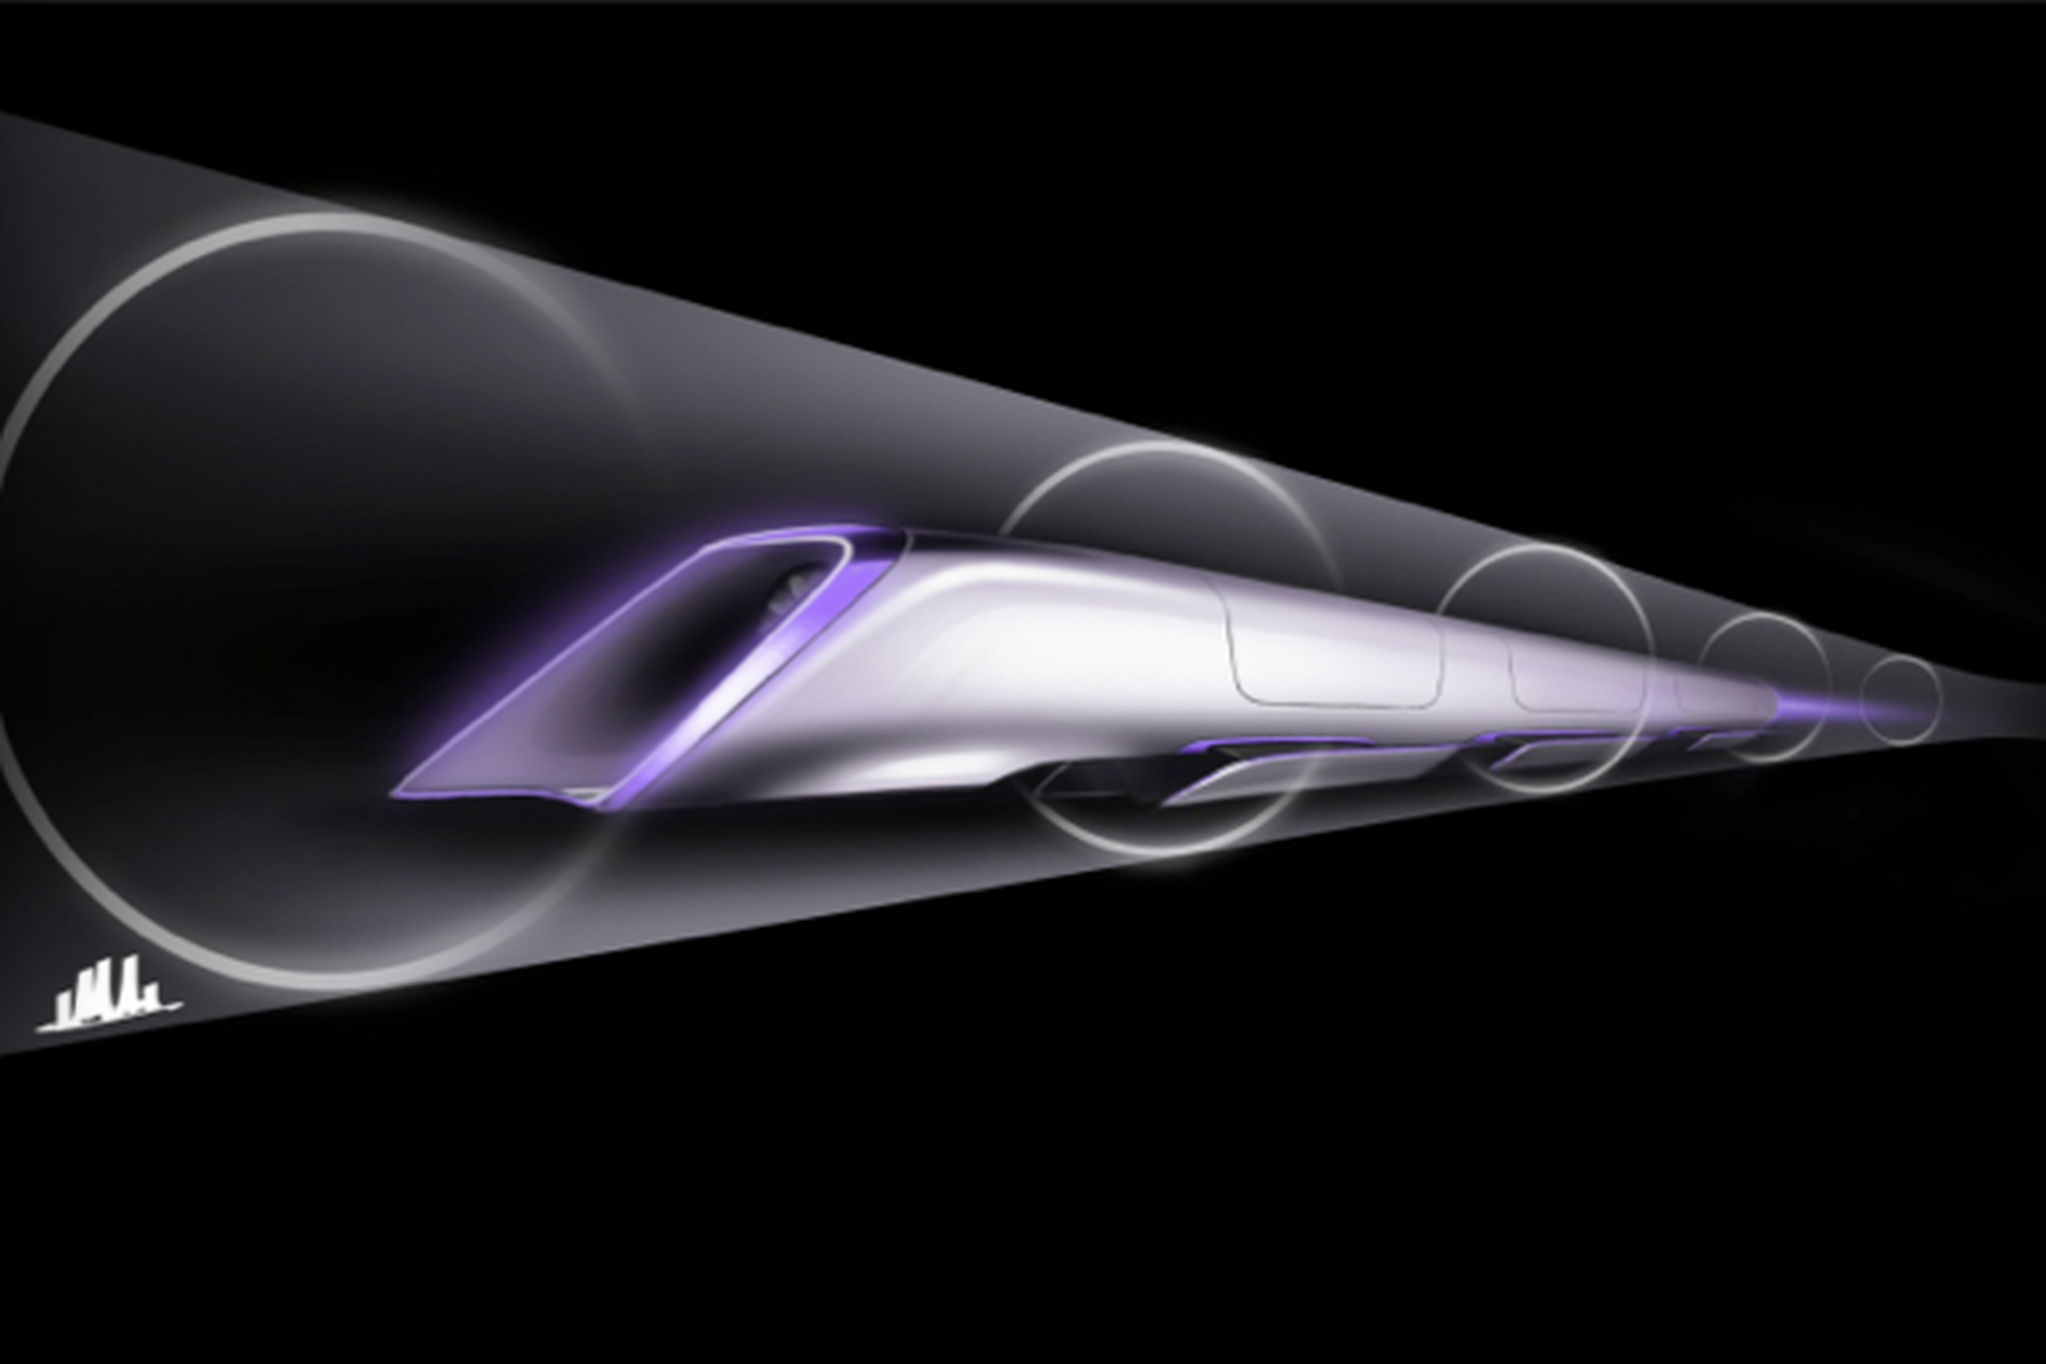 The Verge: Here are the Hyperloop pods competing in Elon Musk's big race later this year   Later this year, dozens of college teams from around the world will travel to Hawthorne, California to compete in a high-stakes contest to prove Elon Musk's vision of super-fast, super-sustainable, tube-based transportation known as  the Hyperloop .   Continue Reading...